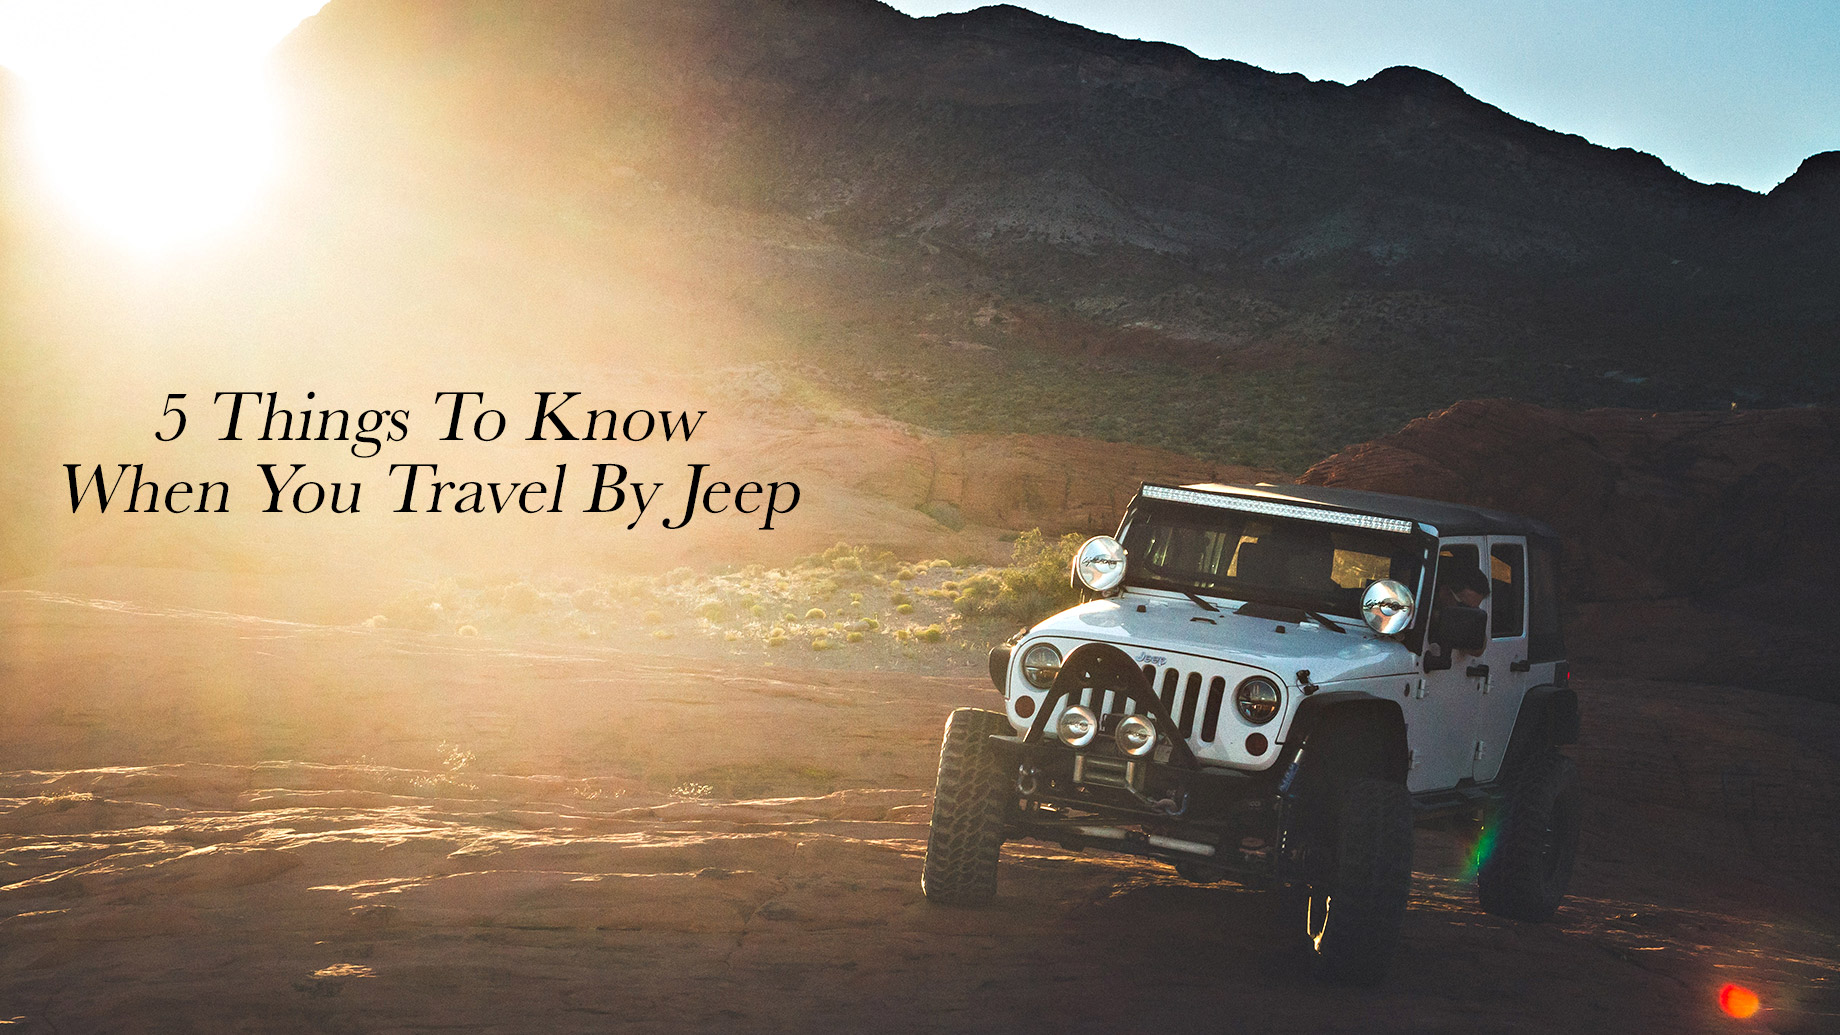 5 Things To Know When You Travel By Jeep